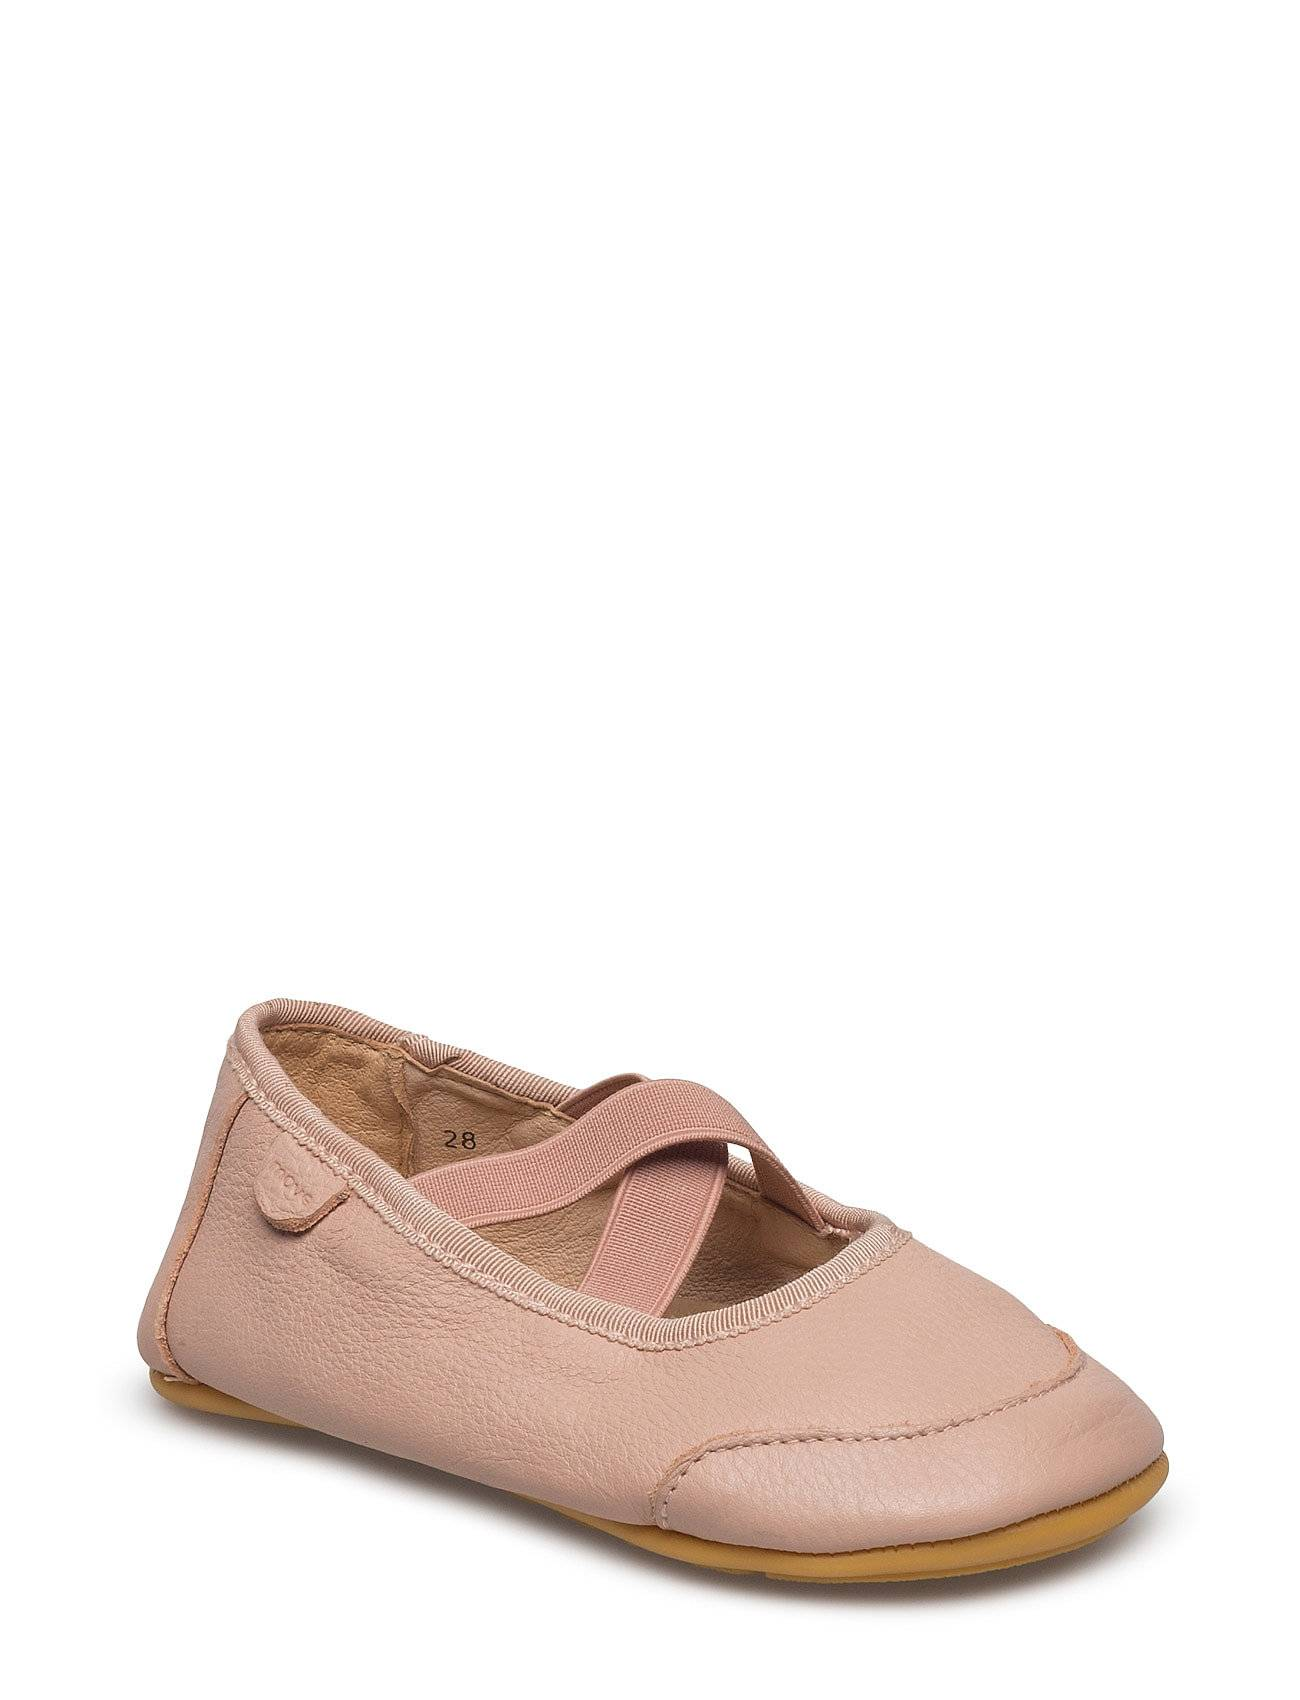 Move by Melton Prewalker - Ballarina With Toecap